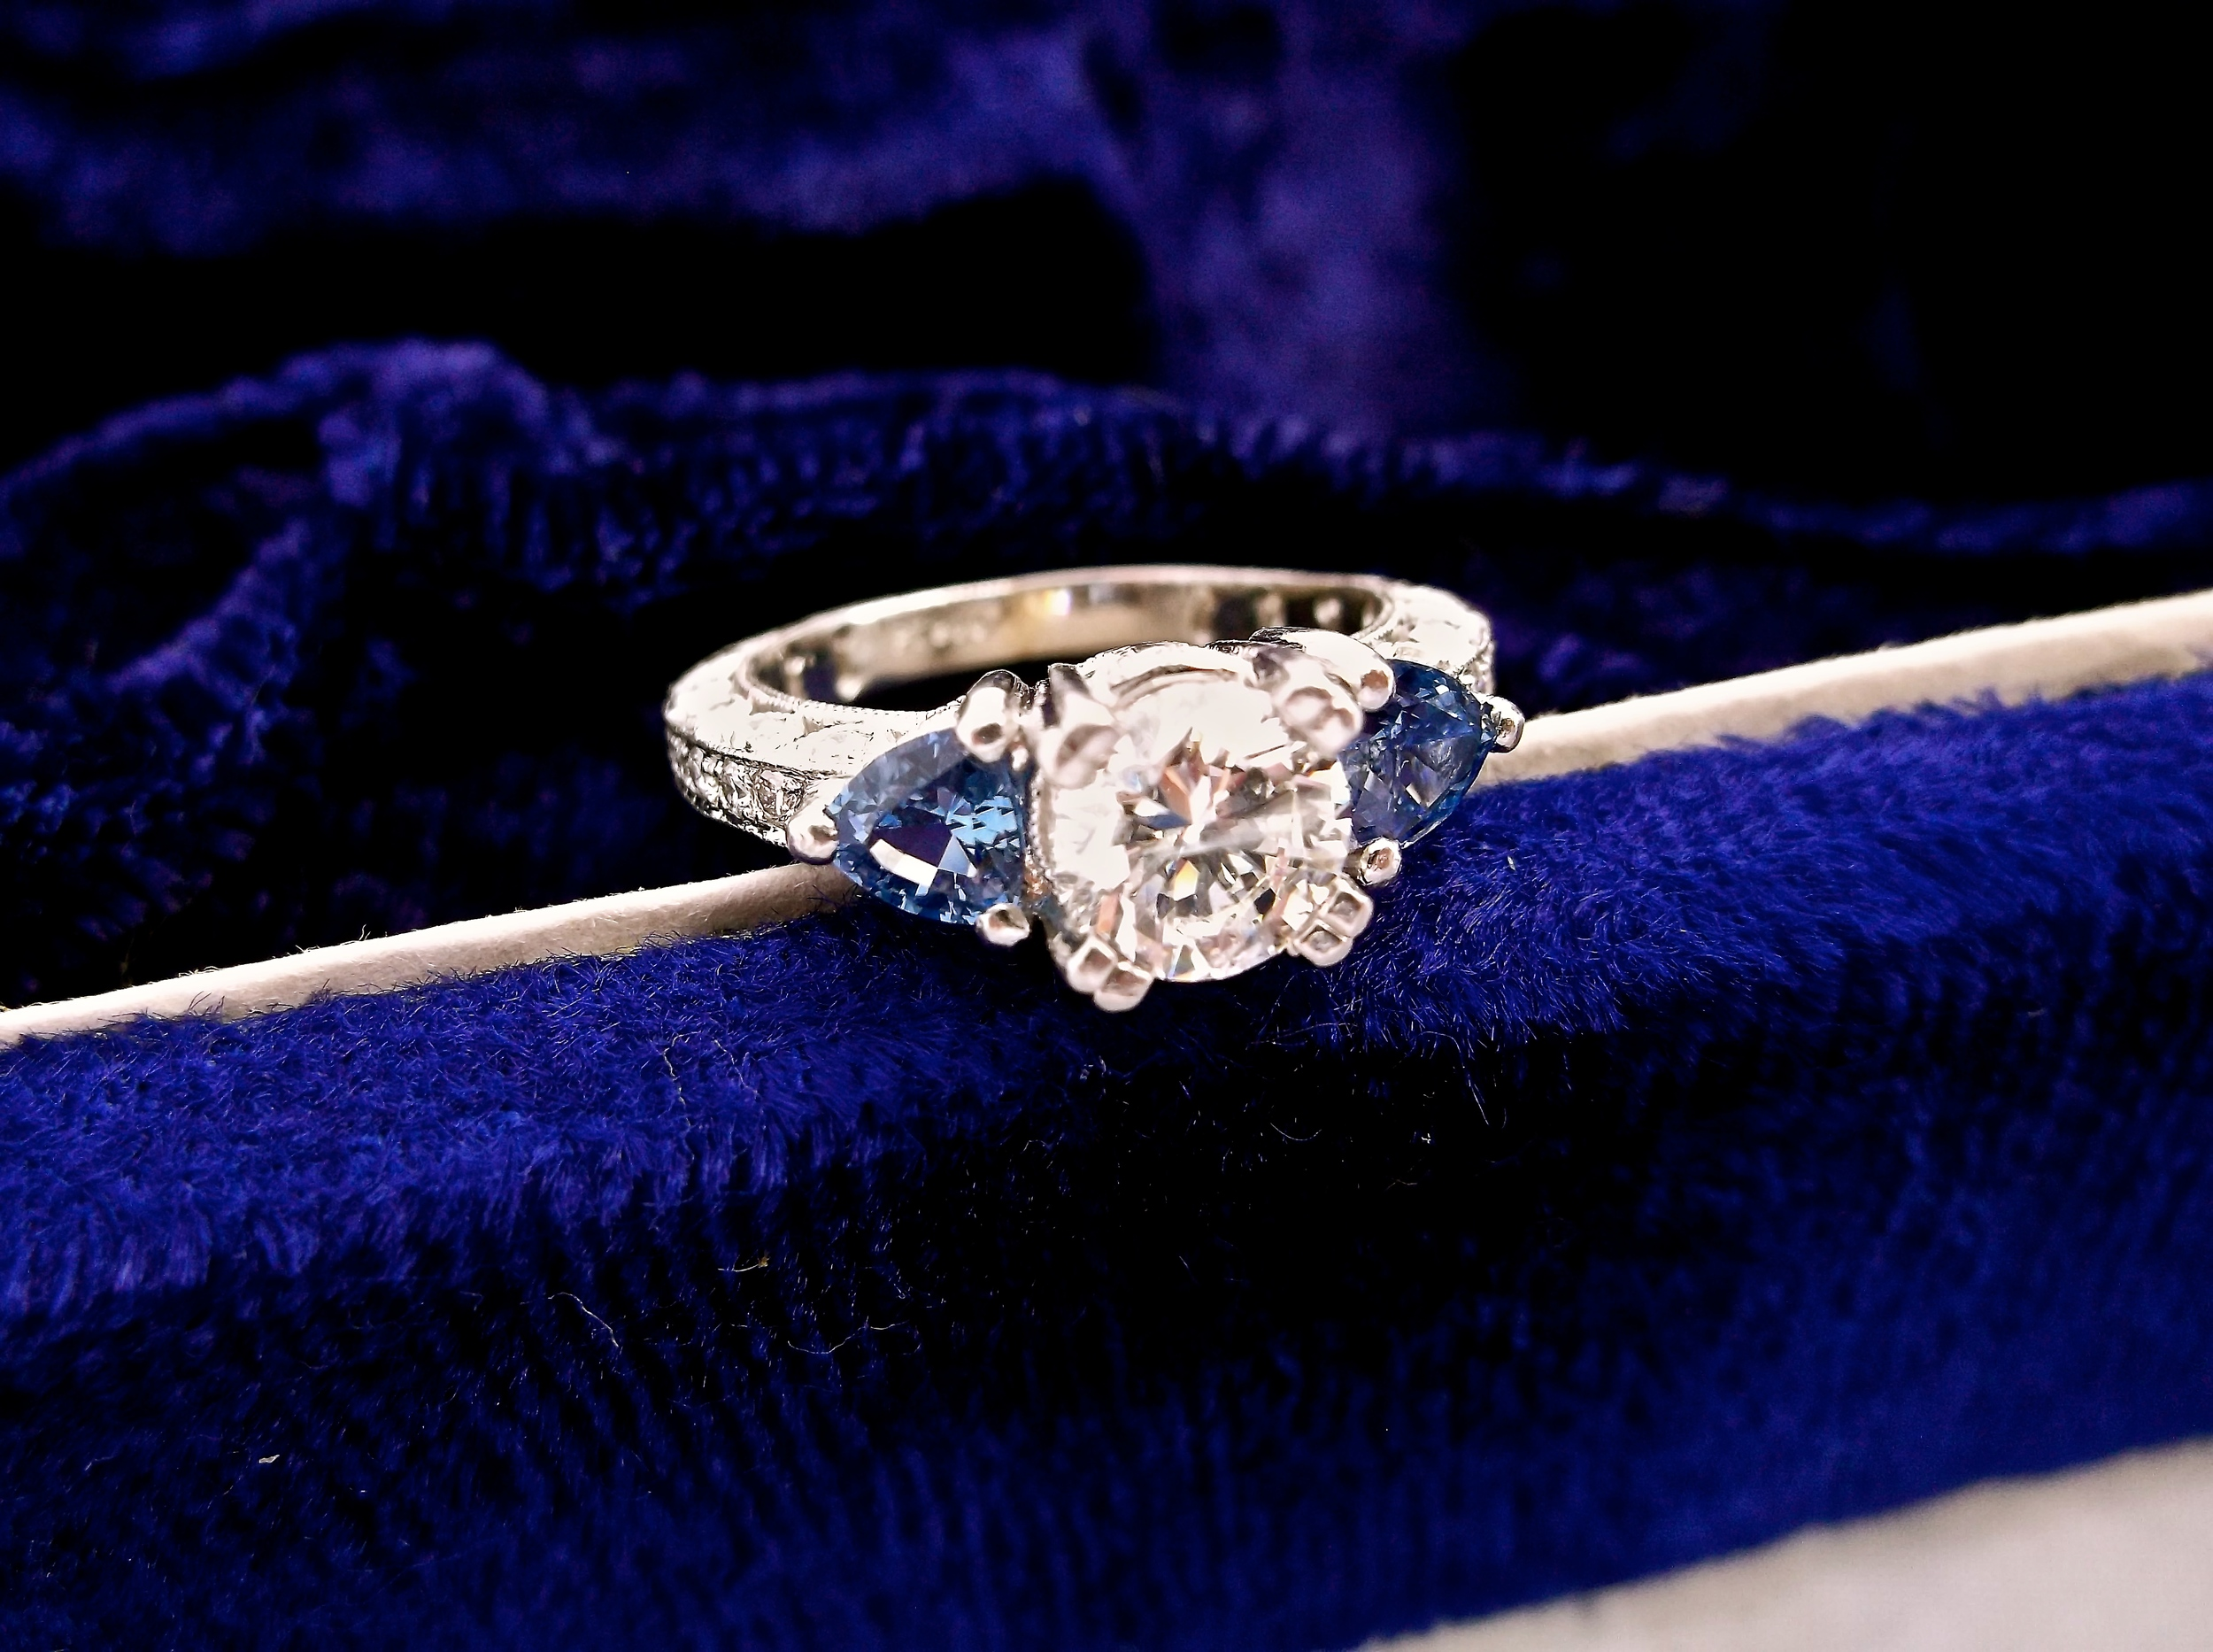 SOLD - Enchanting 0.94 carat diamond set in platinum with a sapphire on each side.